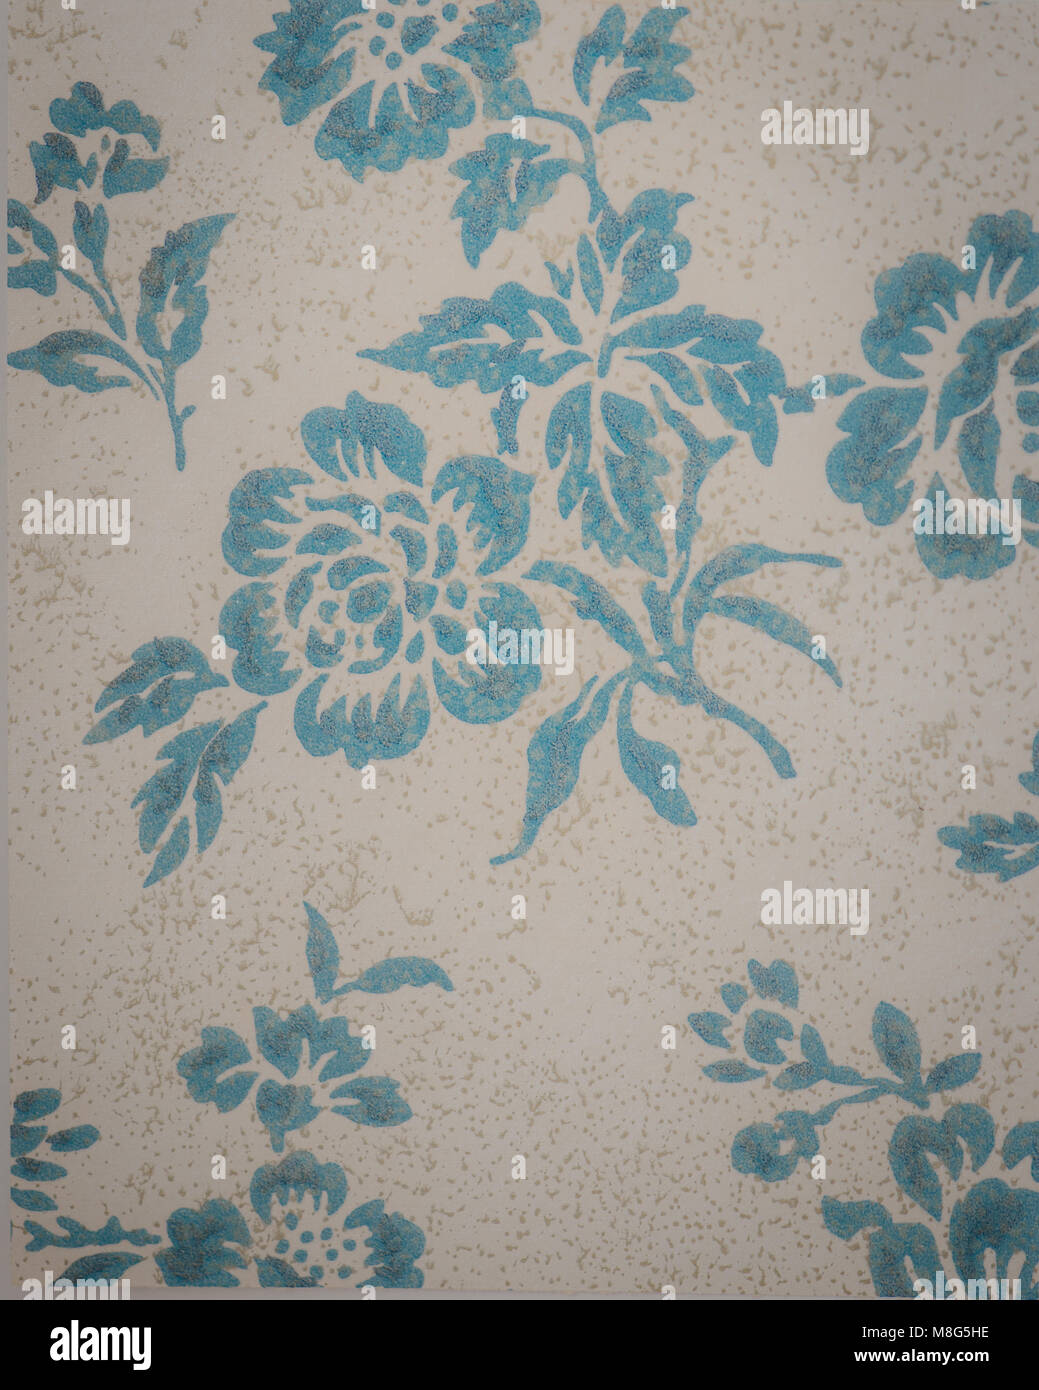 1940 S Vintage Wallpaper With A Floral Pattern Stock Photo